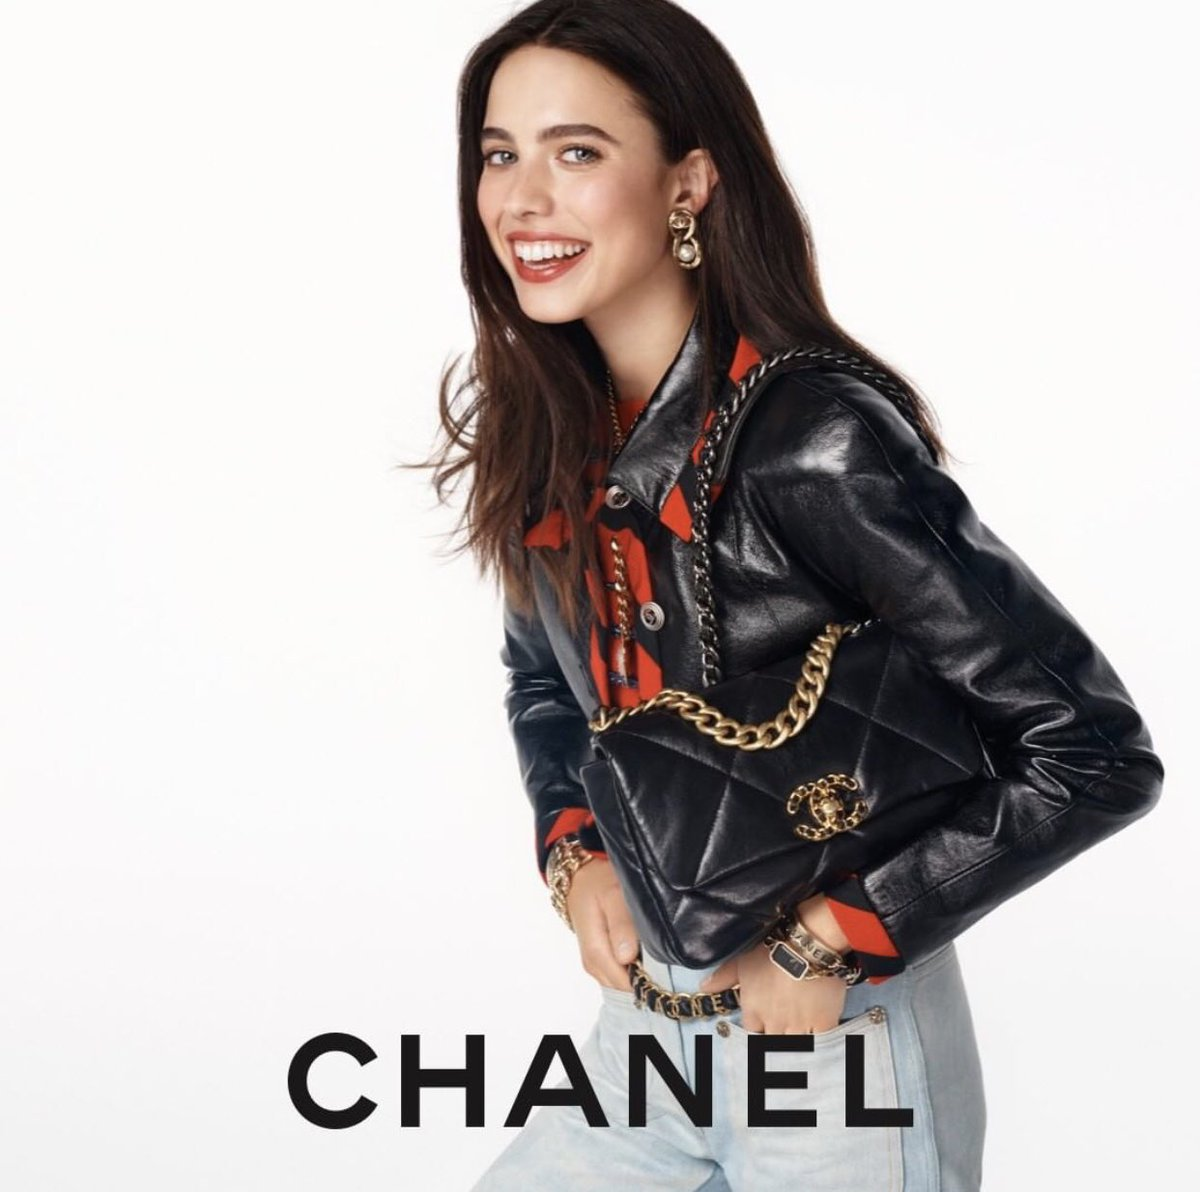 The CHANEL 19 bag – actress Margaret Qualley stars in the latest campaign imagined by Sofia Coppola and photographed by Steven Meisel. #HandbagCHANEL19 #CHANEL  #MargaretQualley #SofiaCoppola #StevenMeisel